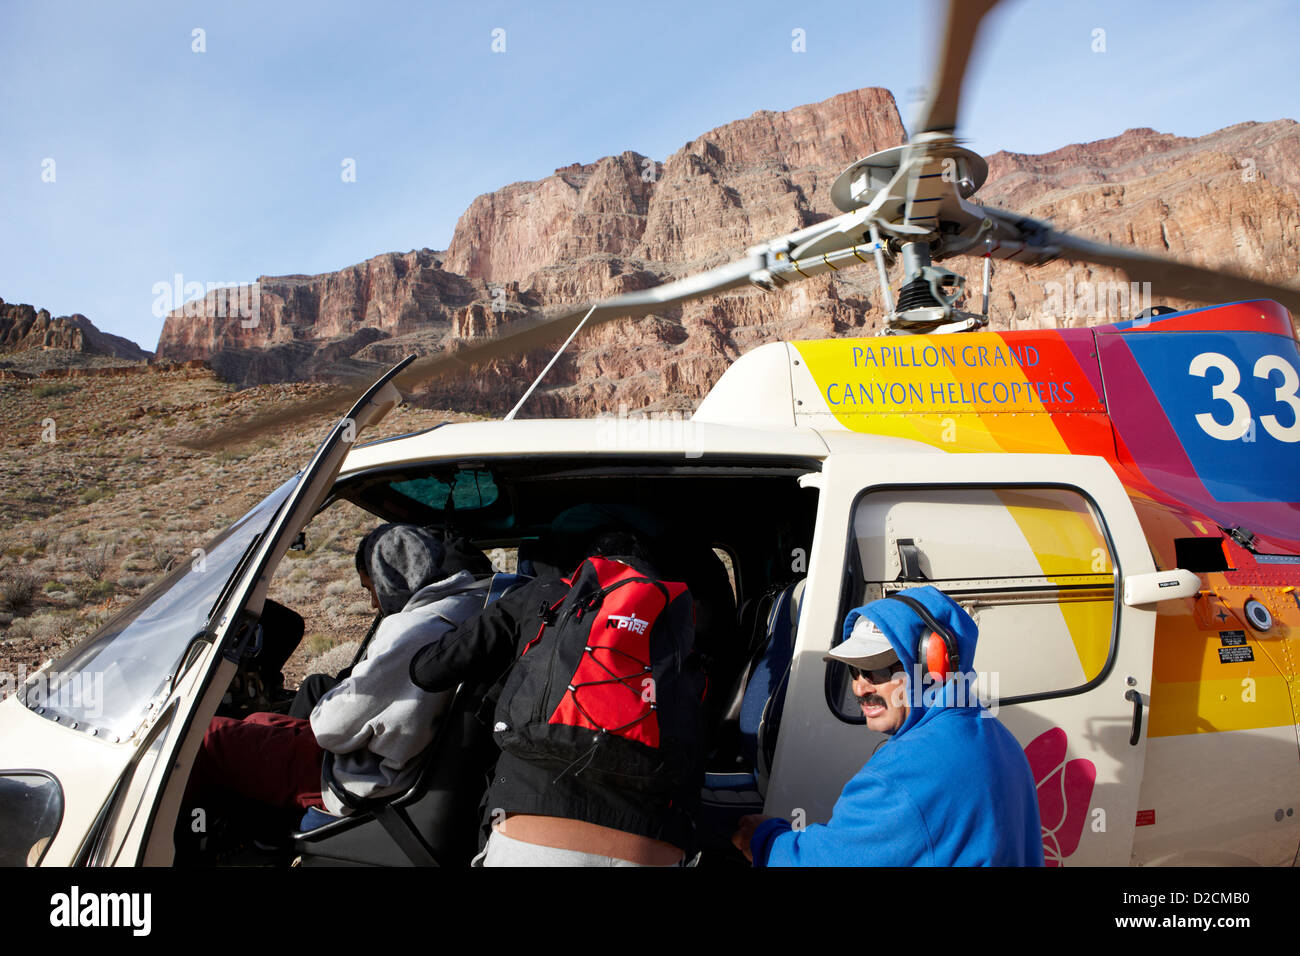 passengers getting on papillon helicopter tours landed on pad down in the Grand canyon Arizona USA - Stock Image